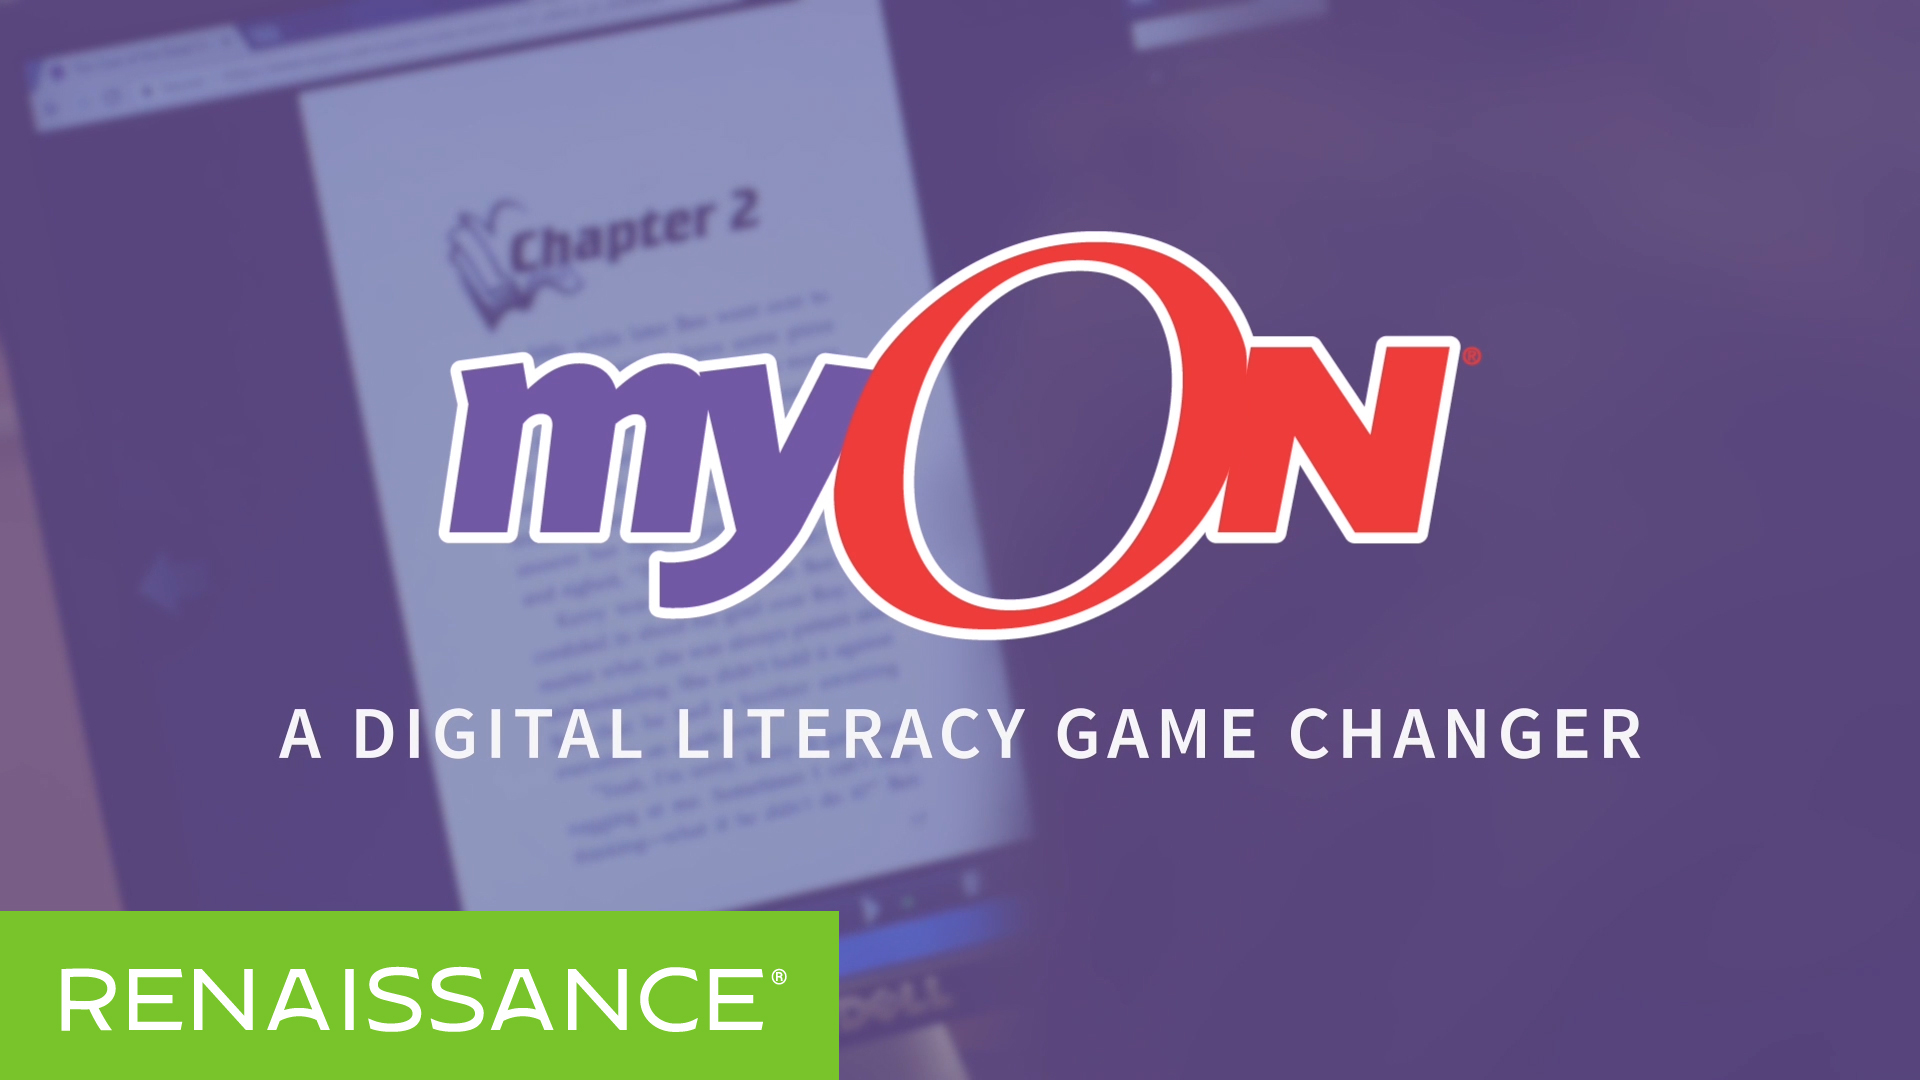 myON® by Renaissance® - A Literacy Game Changer